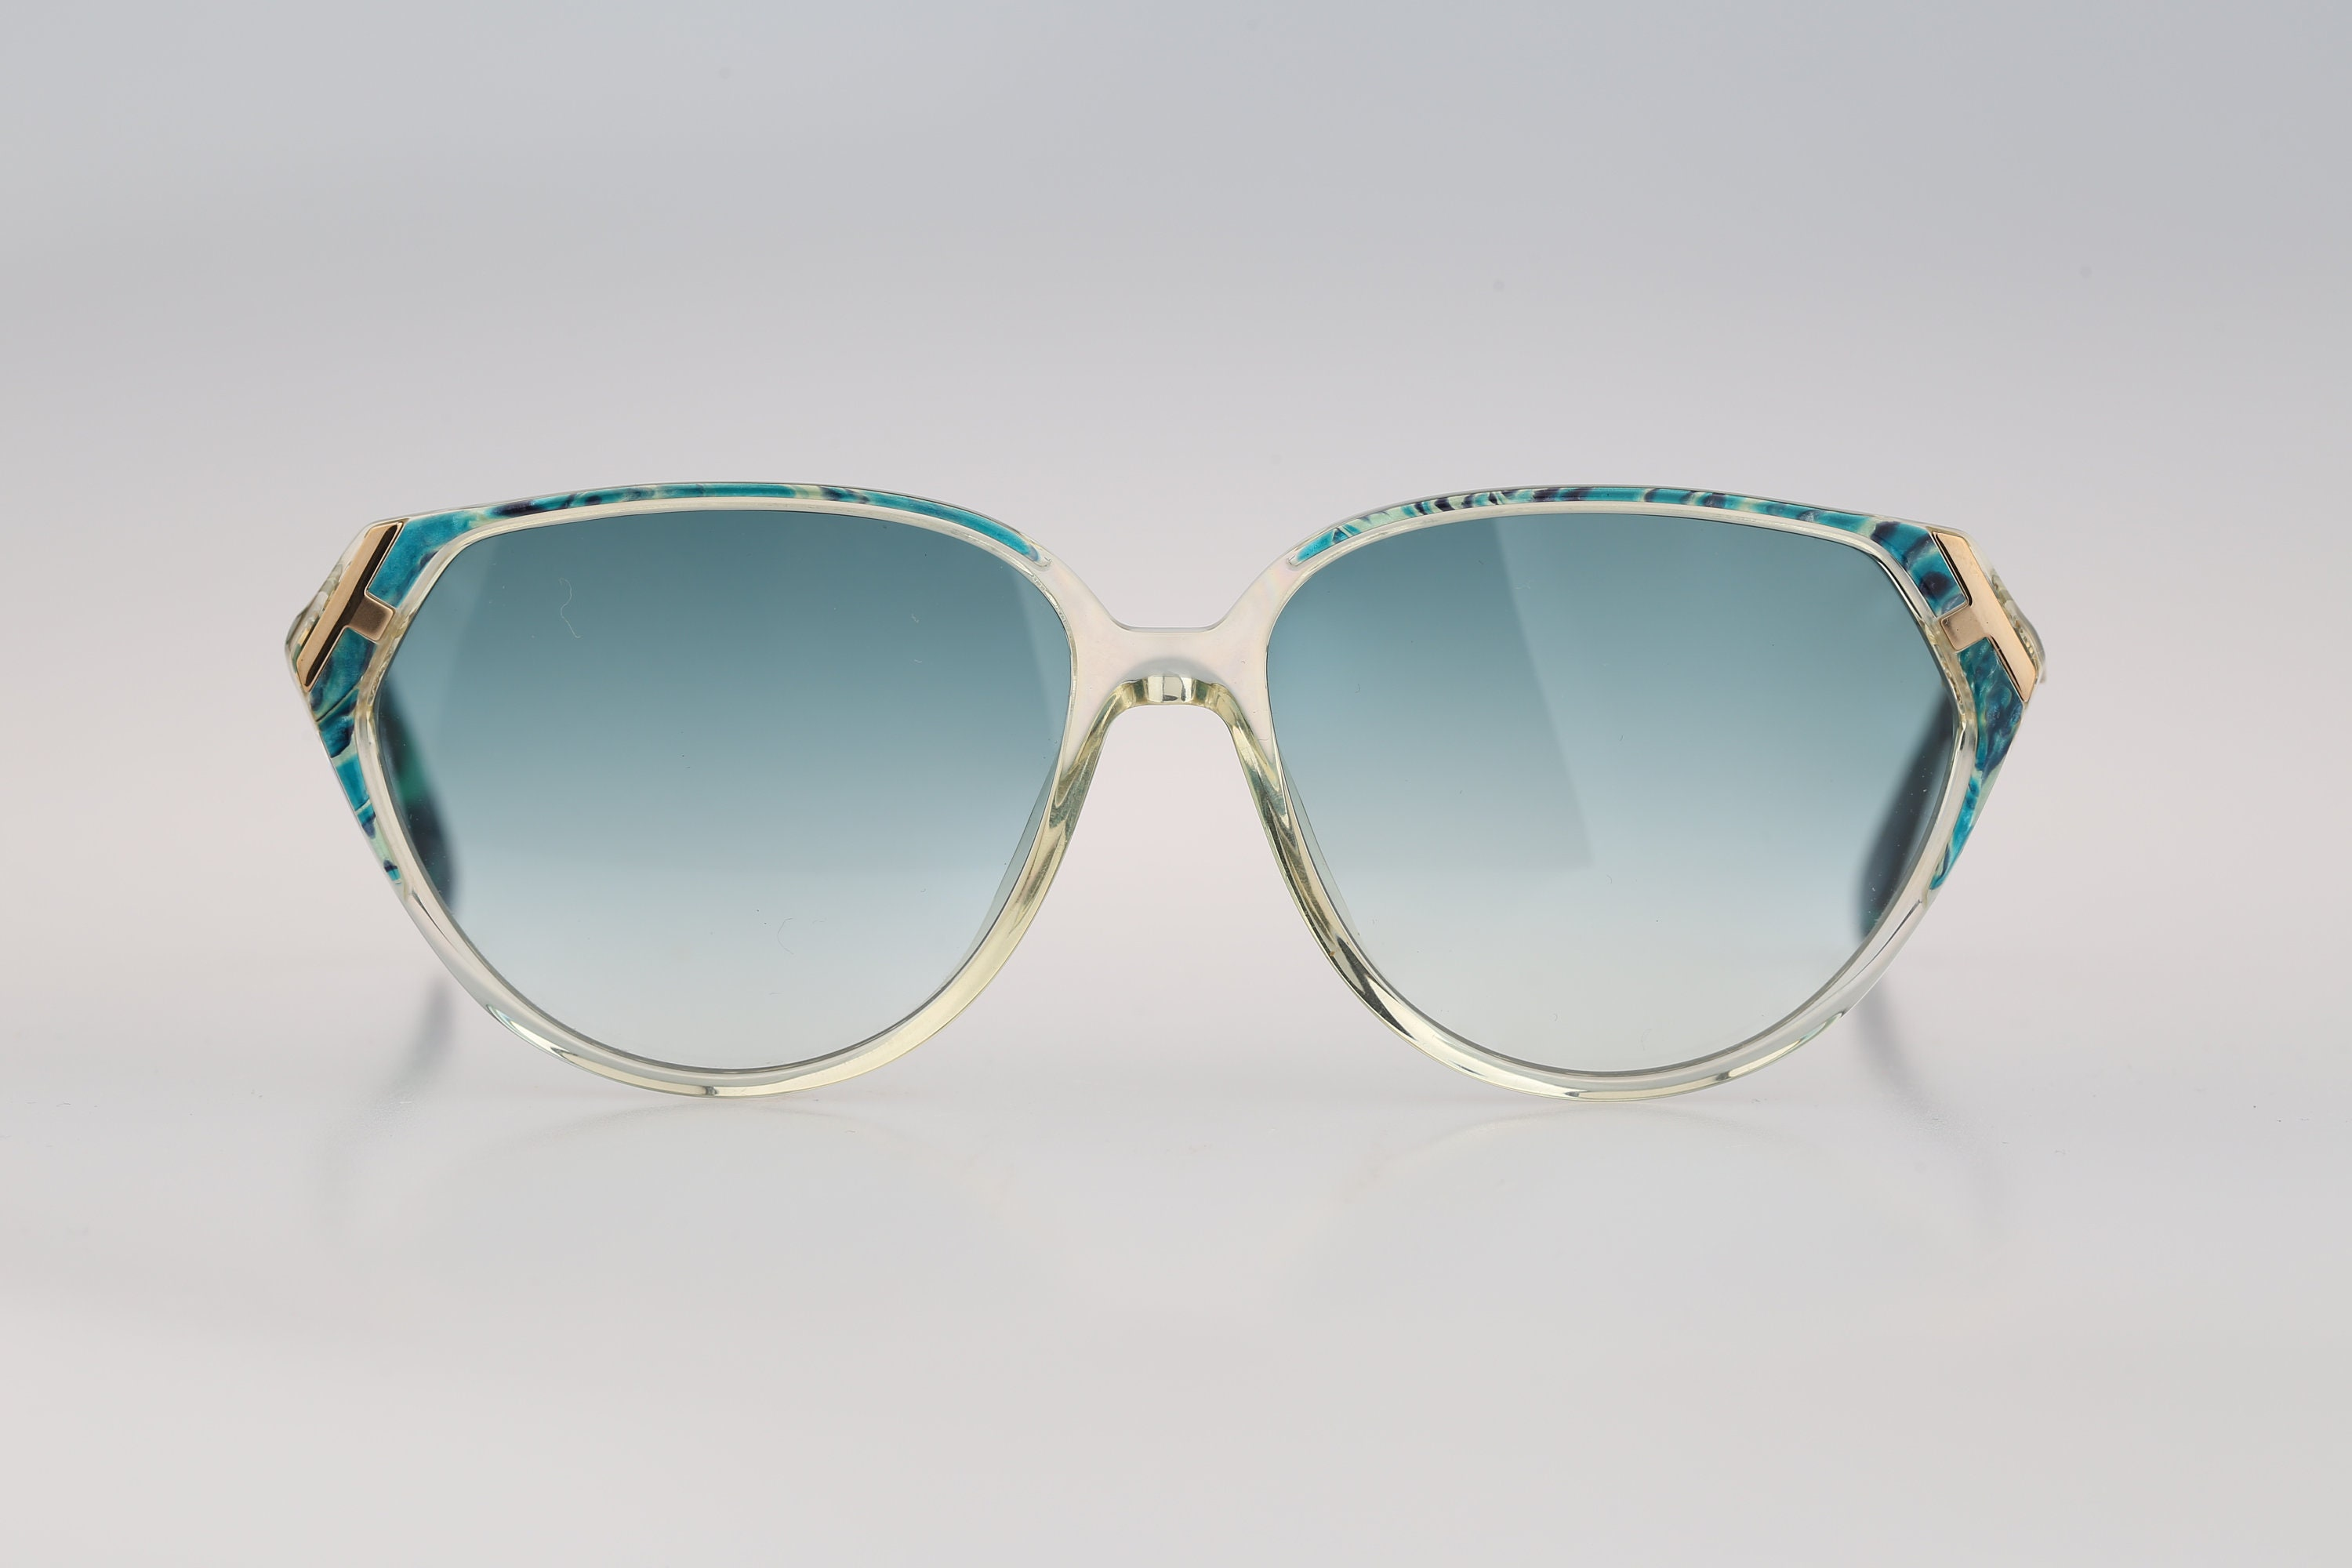 Silhouette M 1324 20 C 2169 Vintage 80s tinted lenses clear &